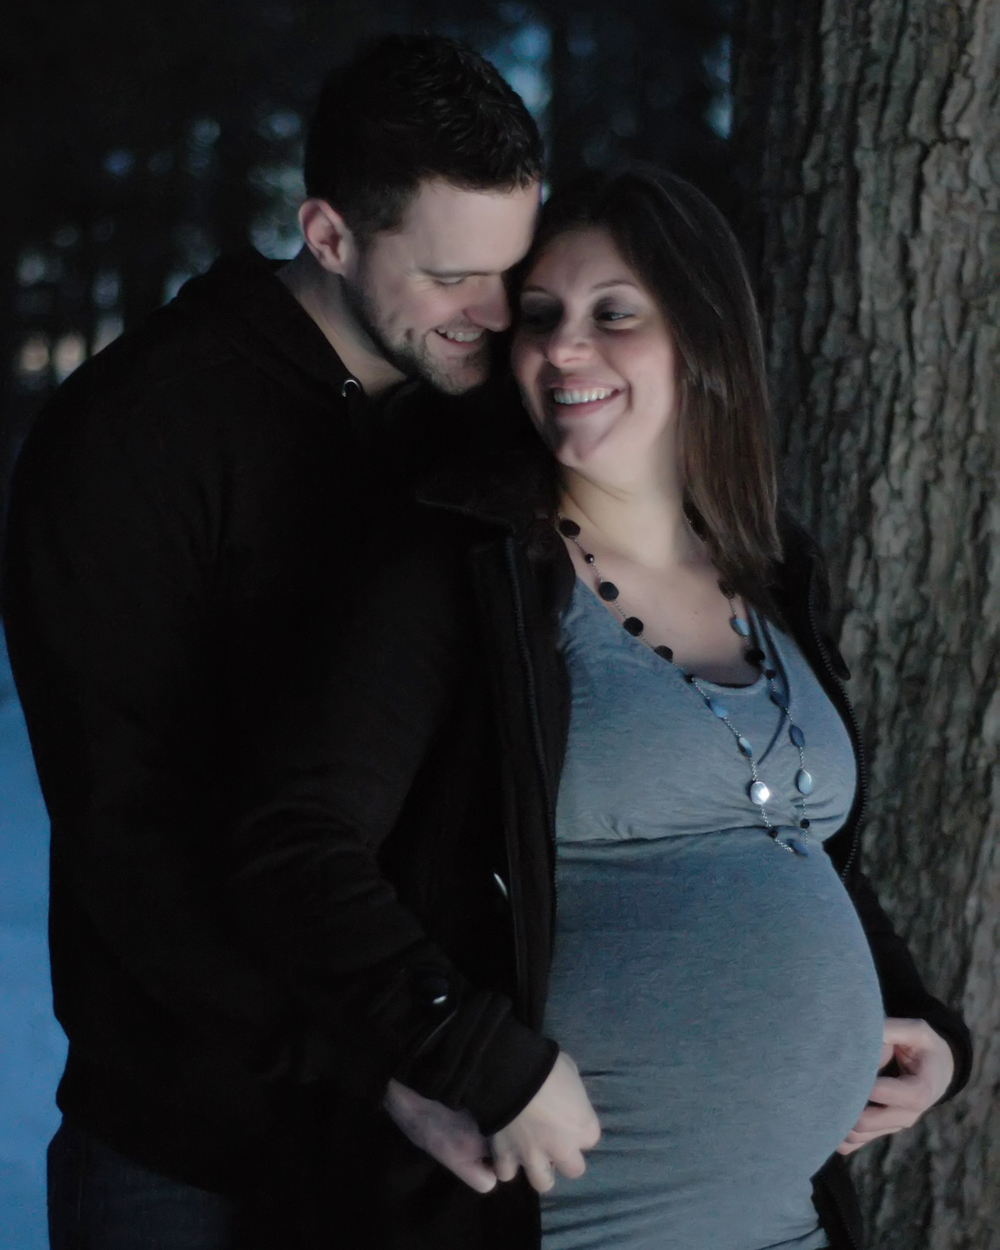 Northshore MA winter night on location maternity and family photographer